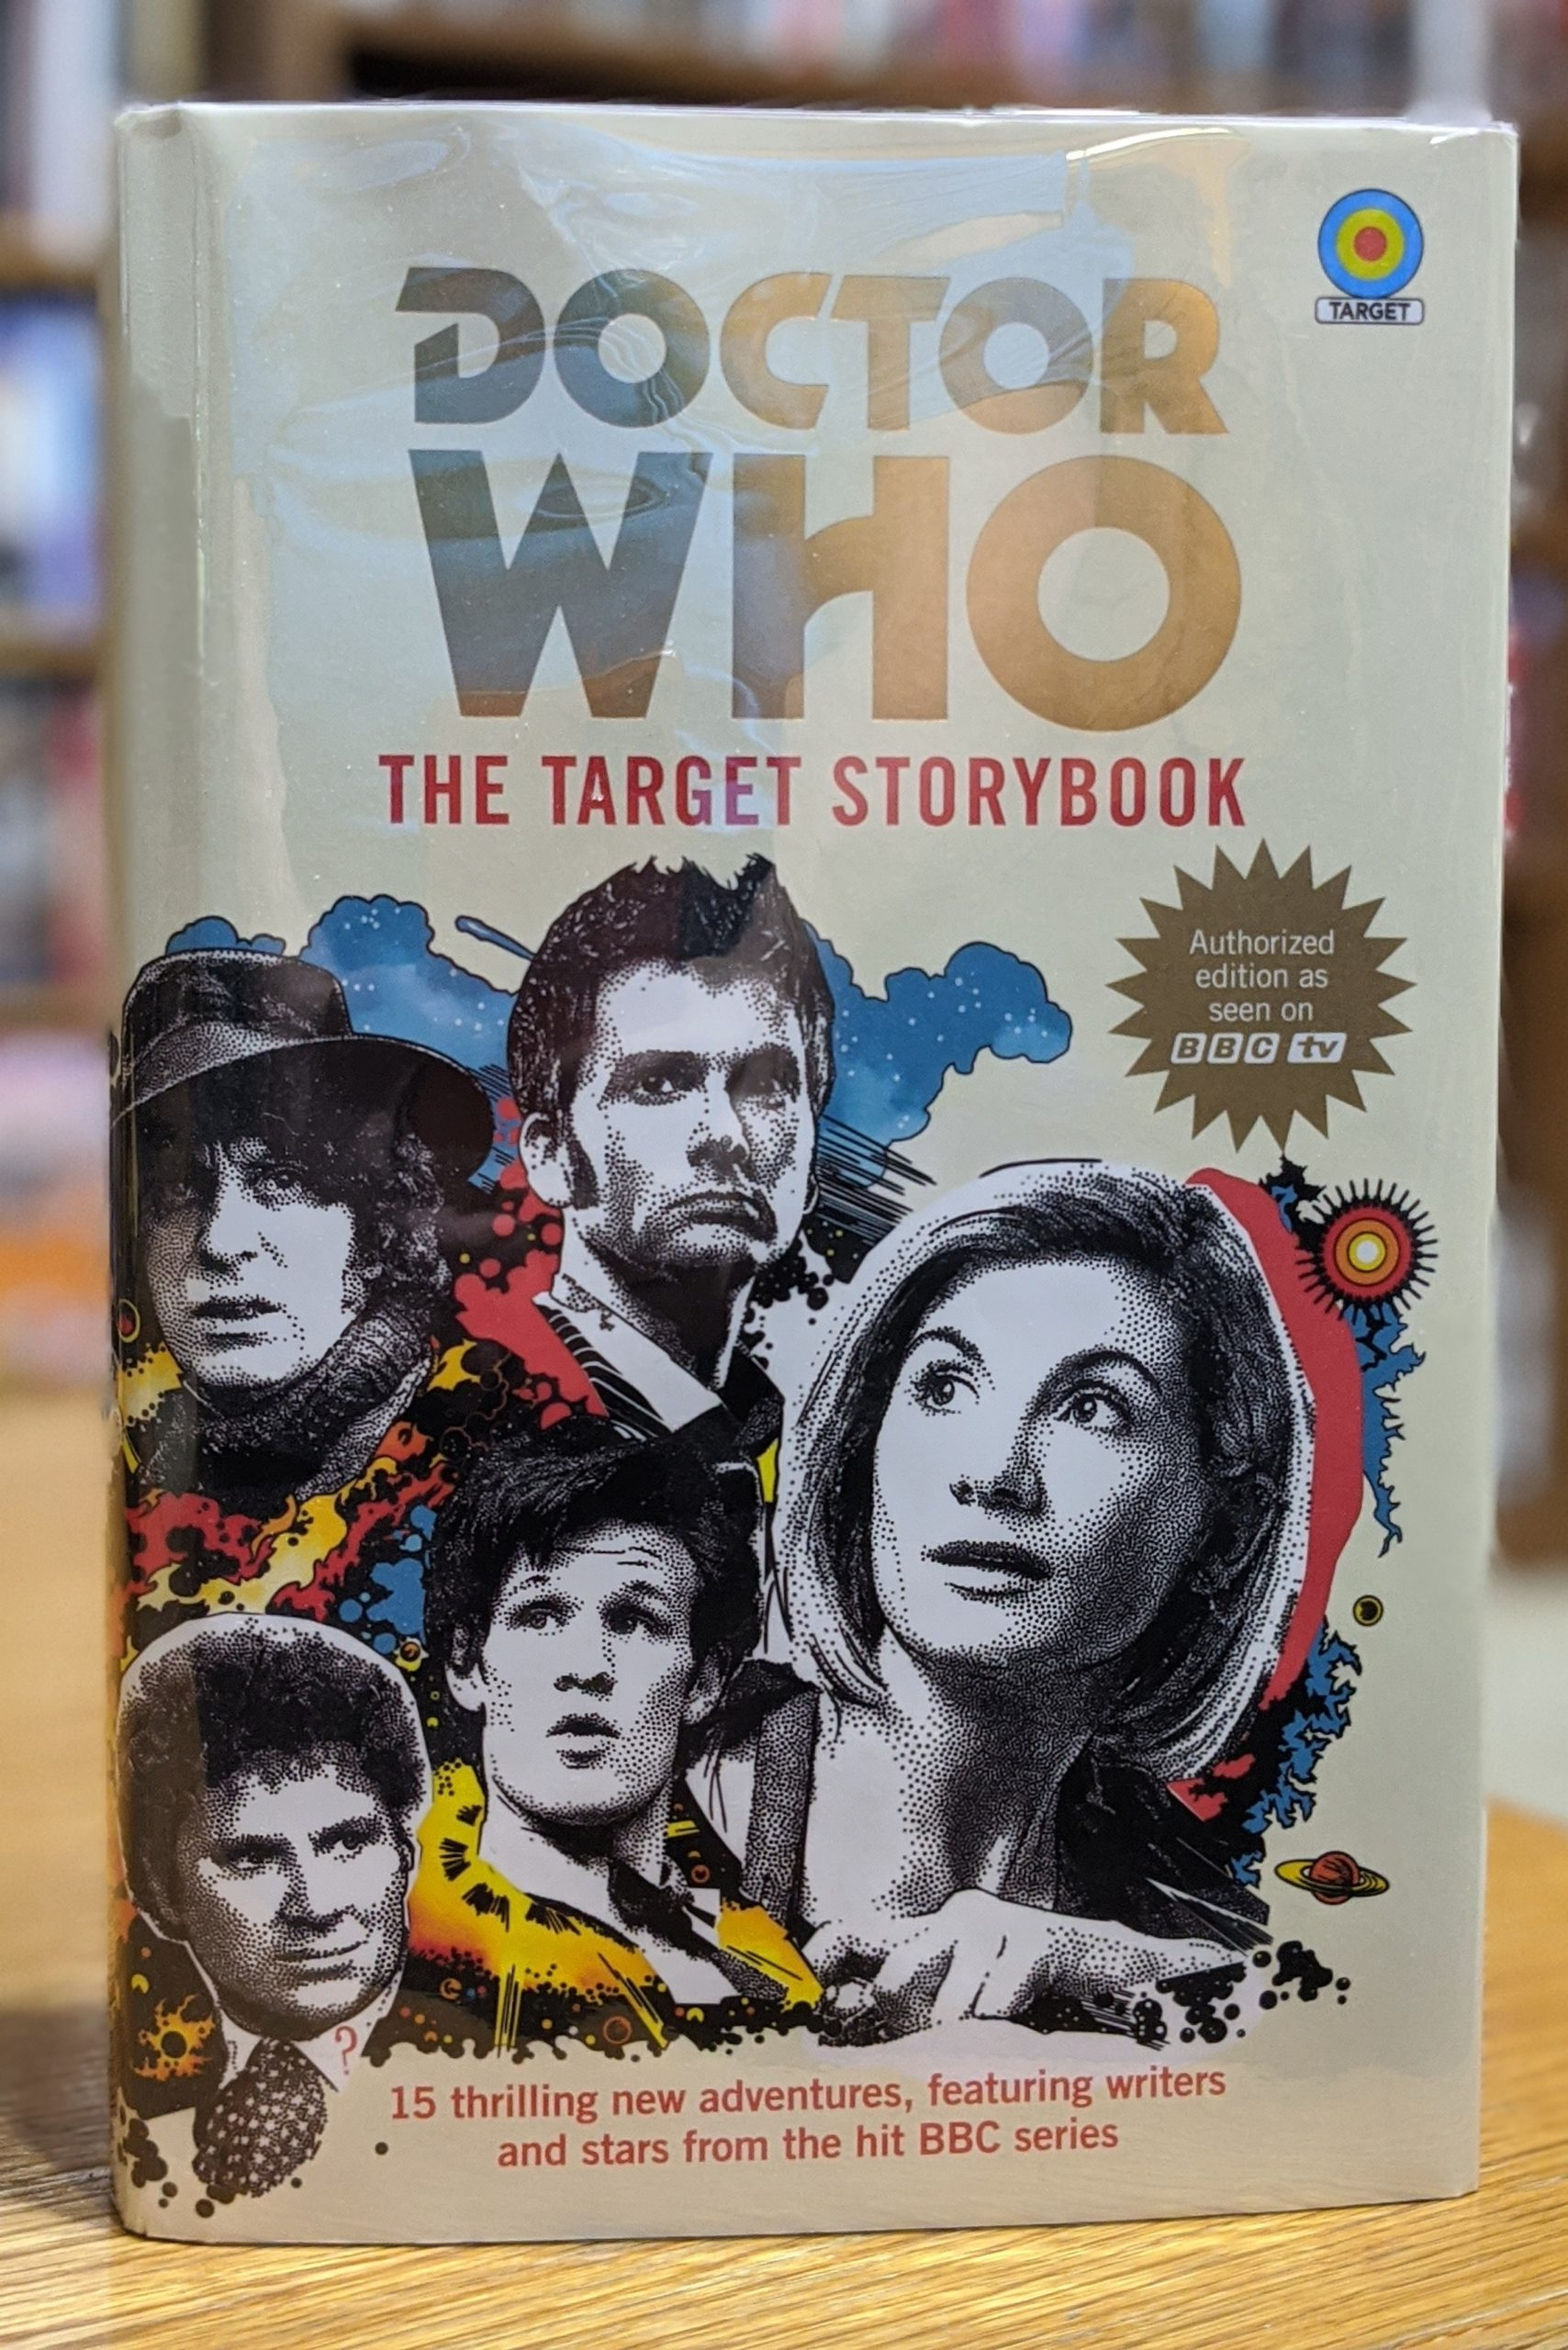 Friday Reads: Doctor Who: The Target Storybook